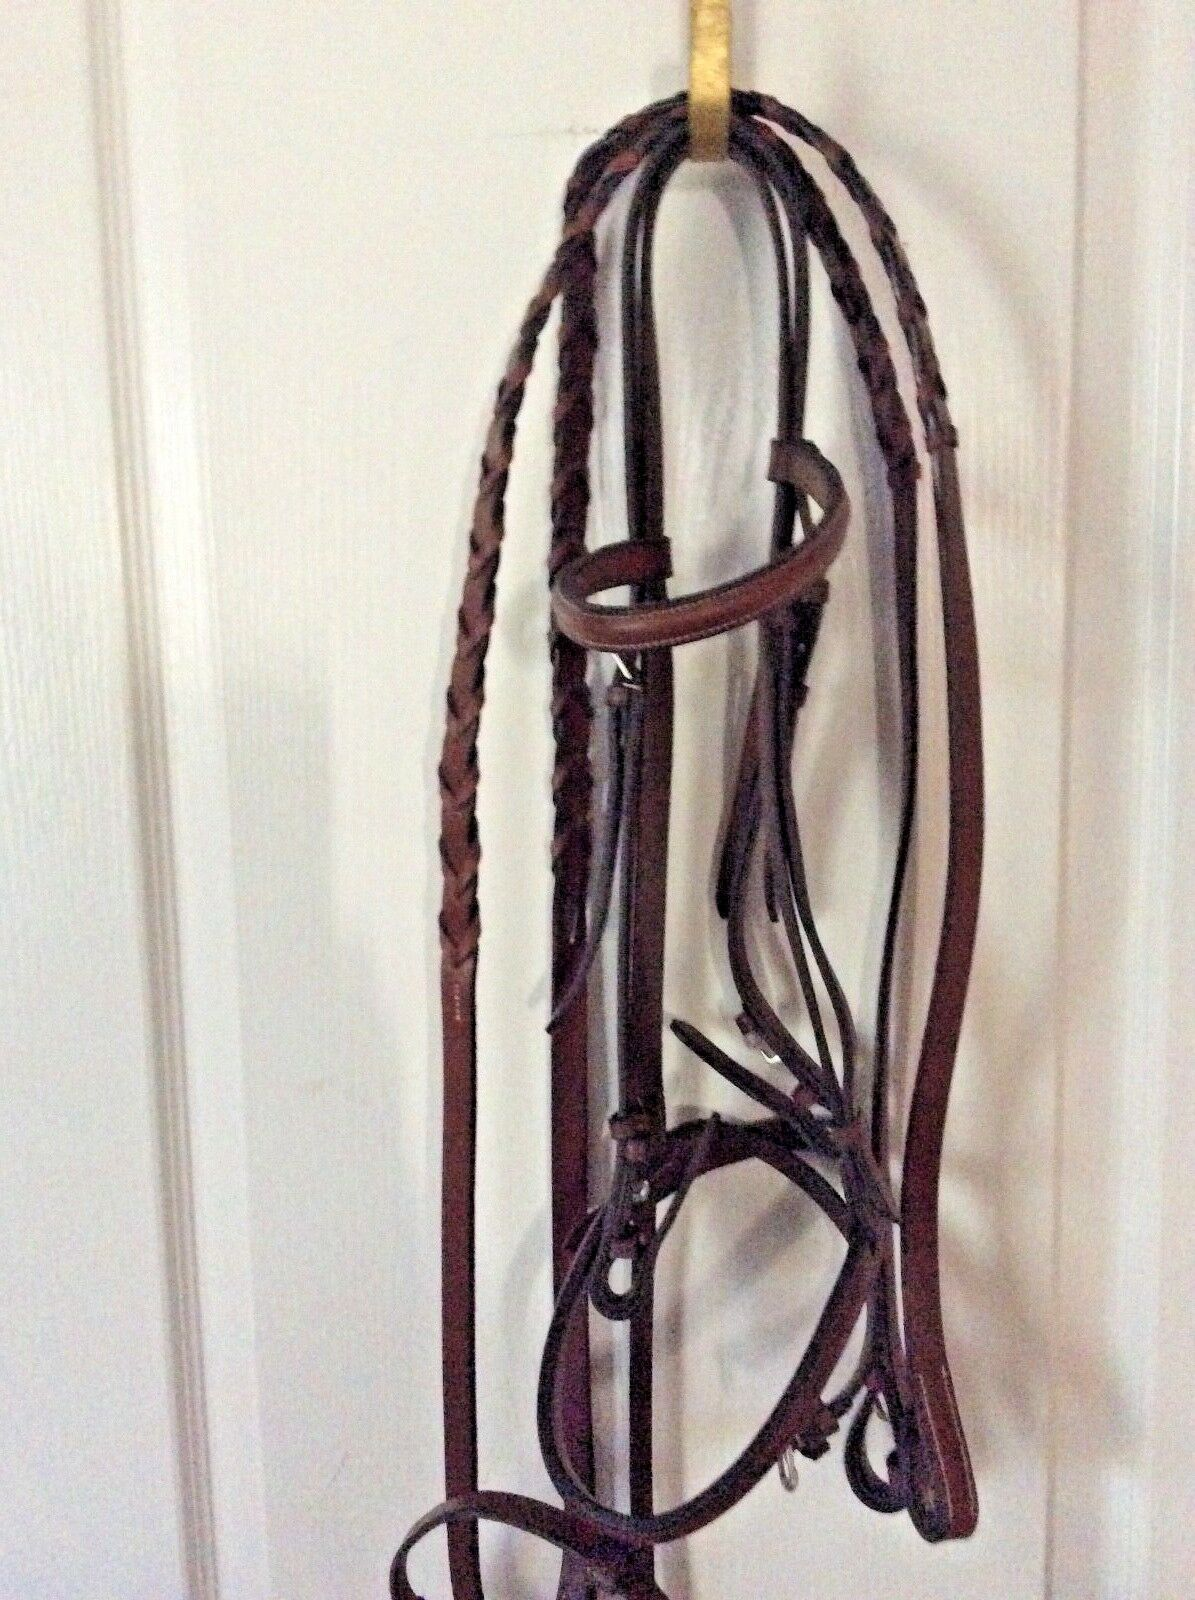 NWOT ENGLISH HAVANA LEATHER BRIDLE DROPPED NOSE BAND W LACED REINS-ENGLAND-HORSE